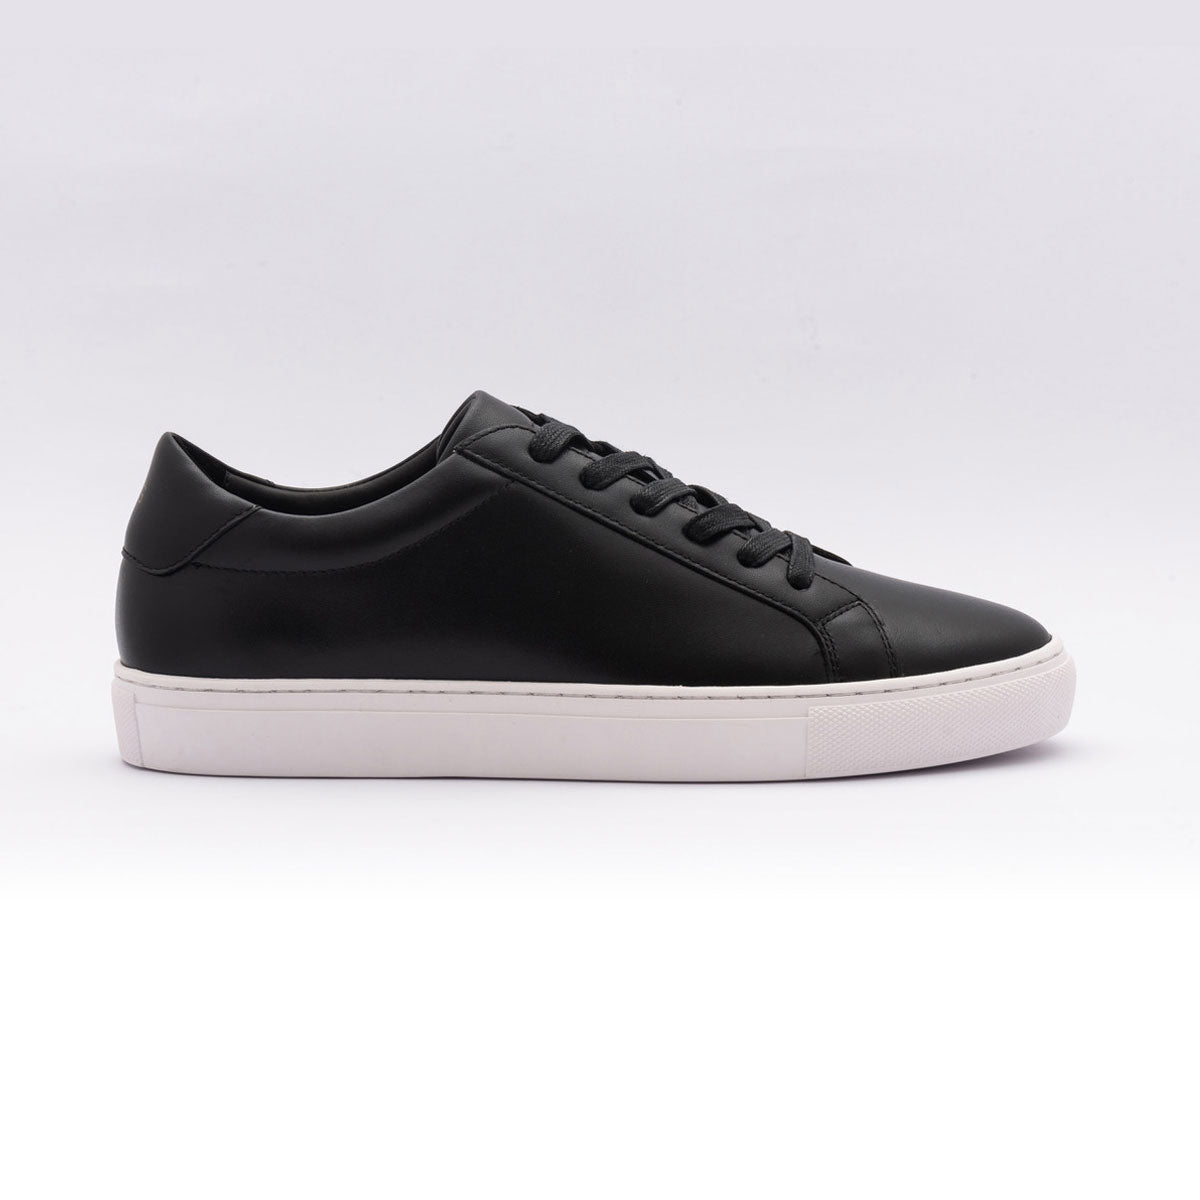 The Low Top in Black